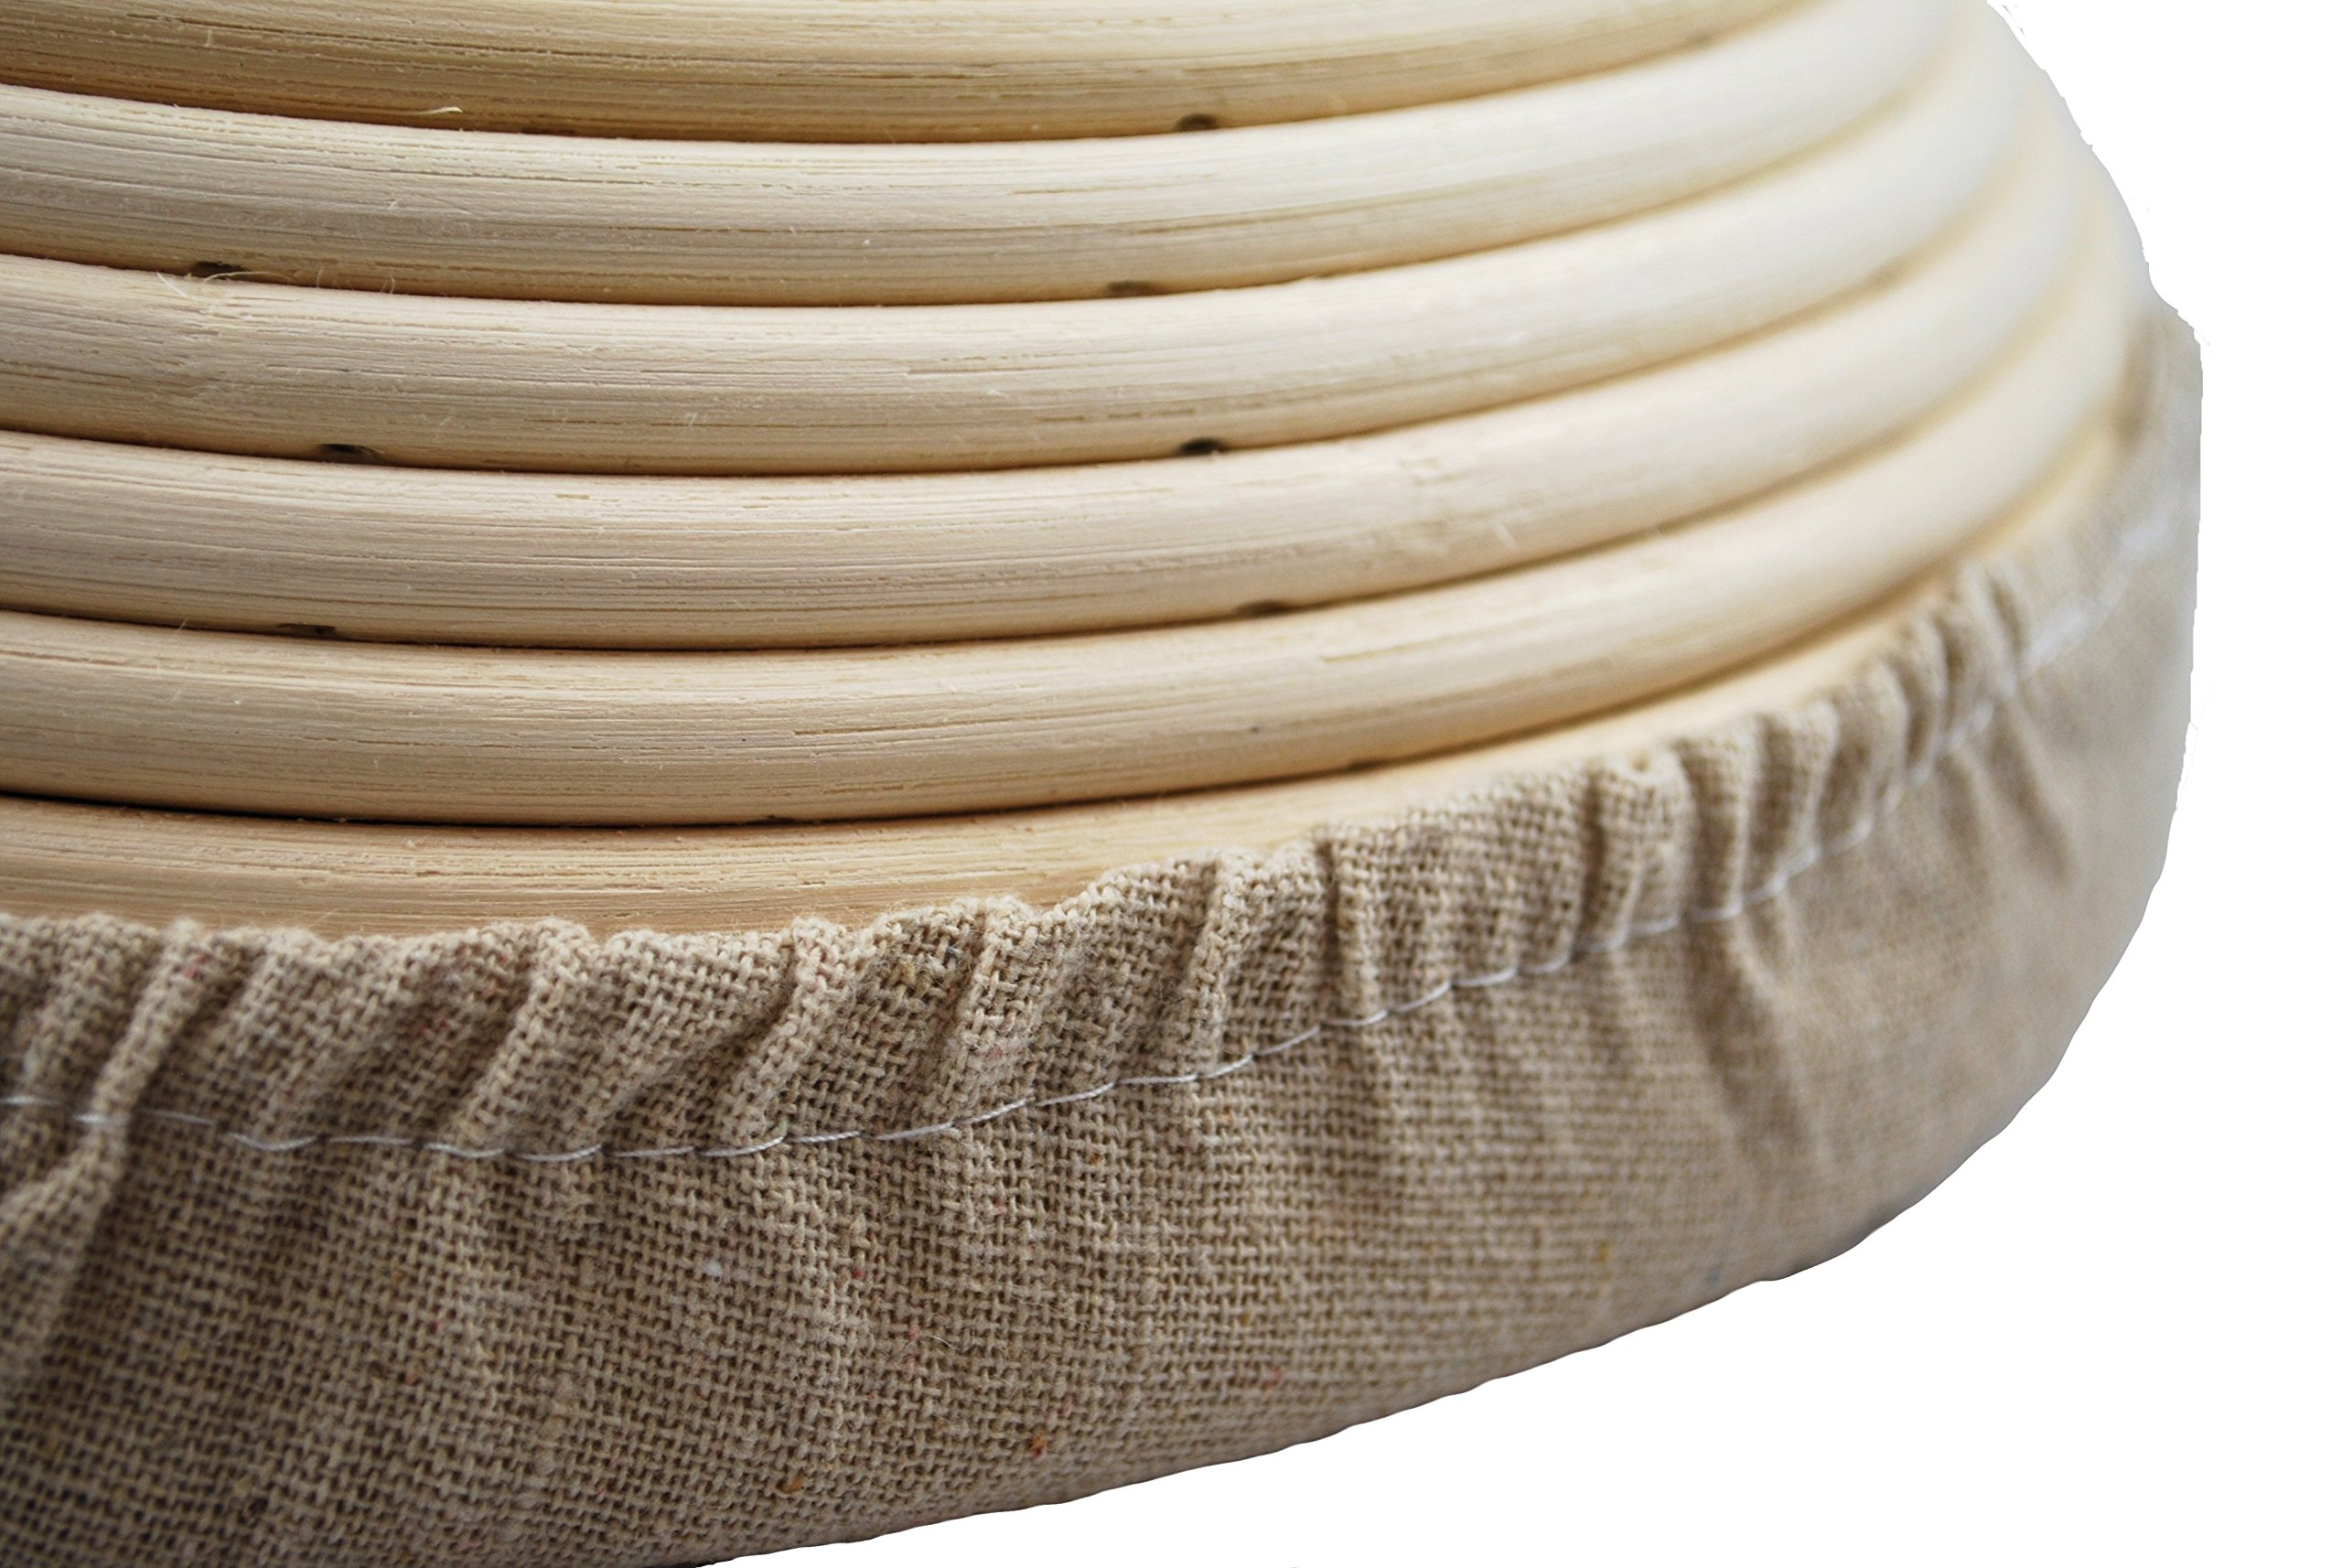 Adore Amore - 10 inch Round Banneton Bread Proofing Basket Removable Linen Cloth Liner Instructions and Recipe Included Natural Eco-Friendly Rattan Cane Brotform Large Bowl Artisan Bake Proving by Adore Amore (Image #5)